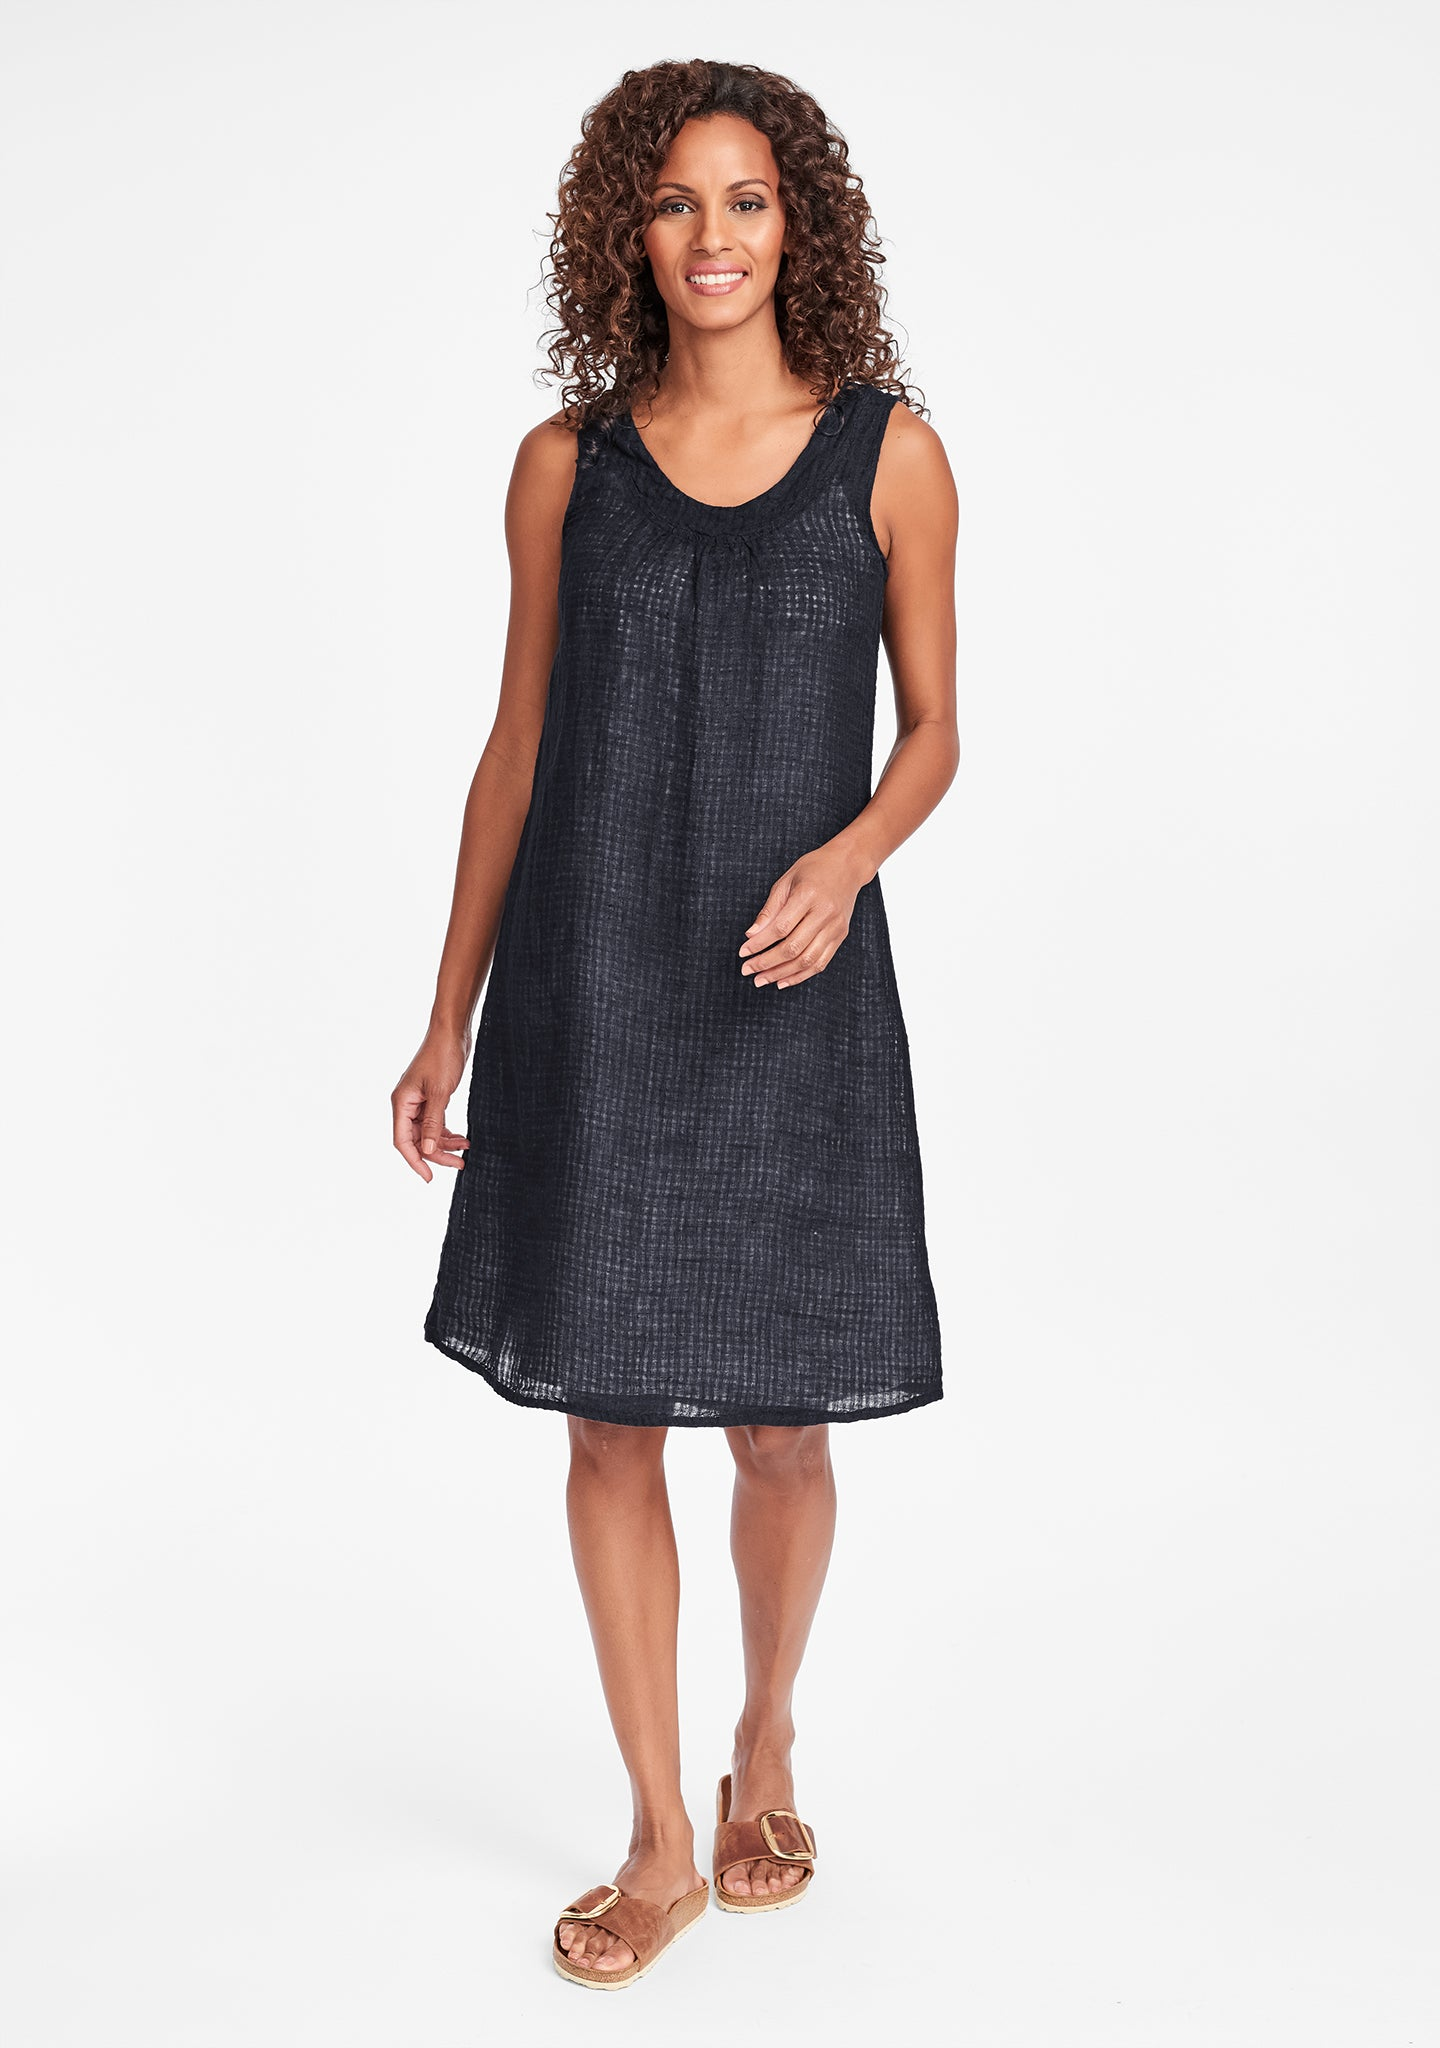 tao dress linen shift dress black